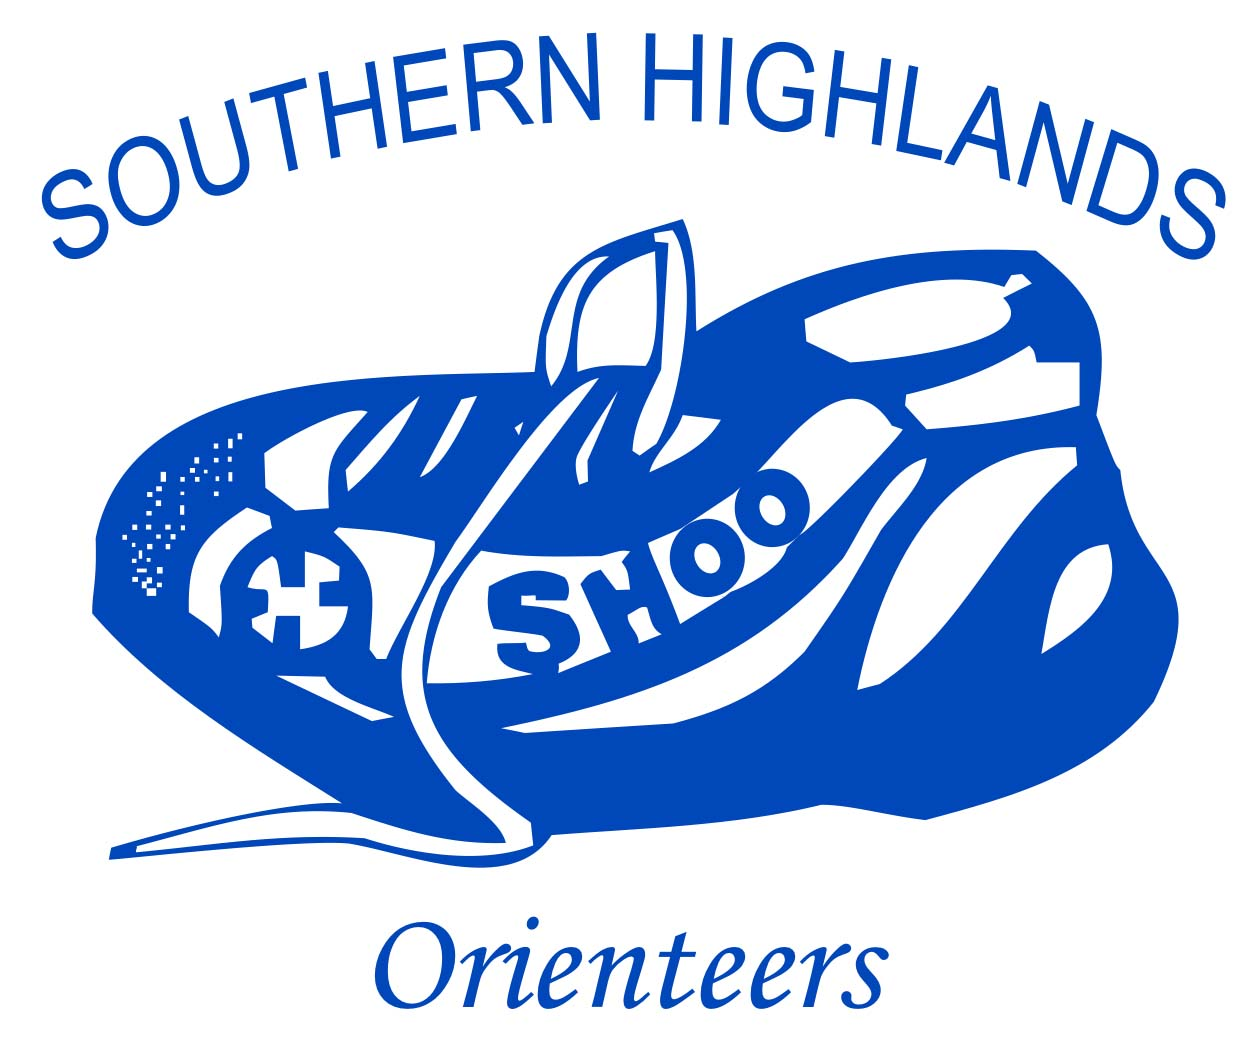 Southern Highlands Orienteers